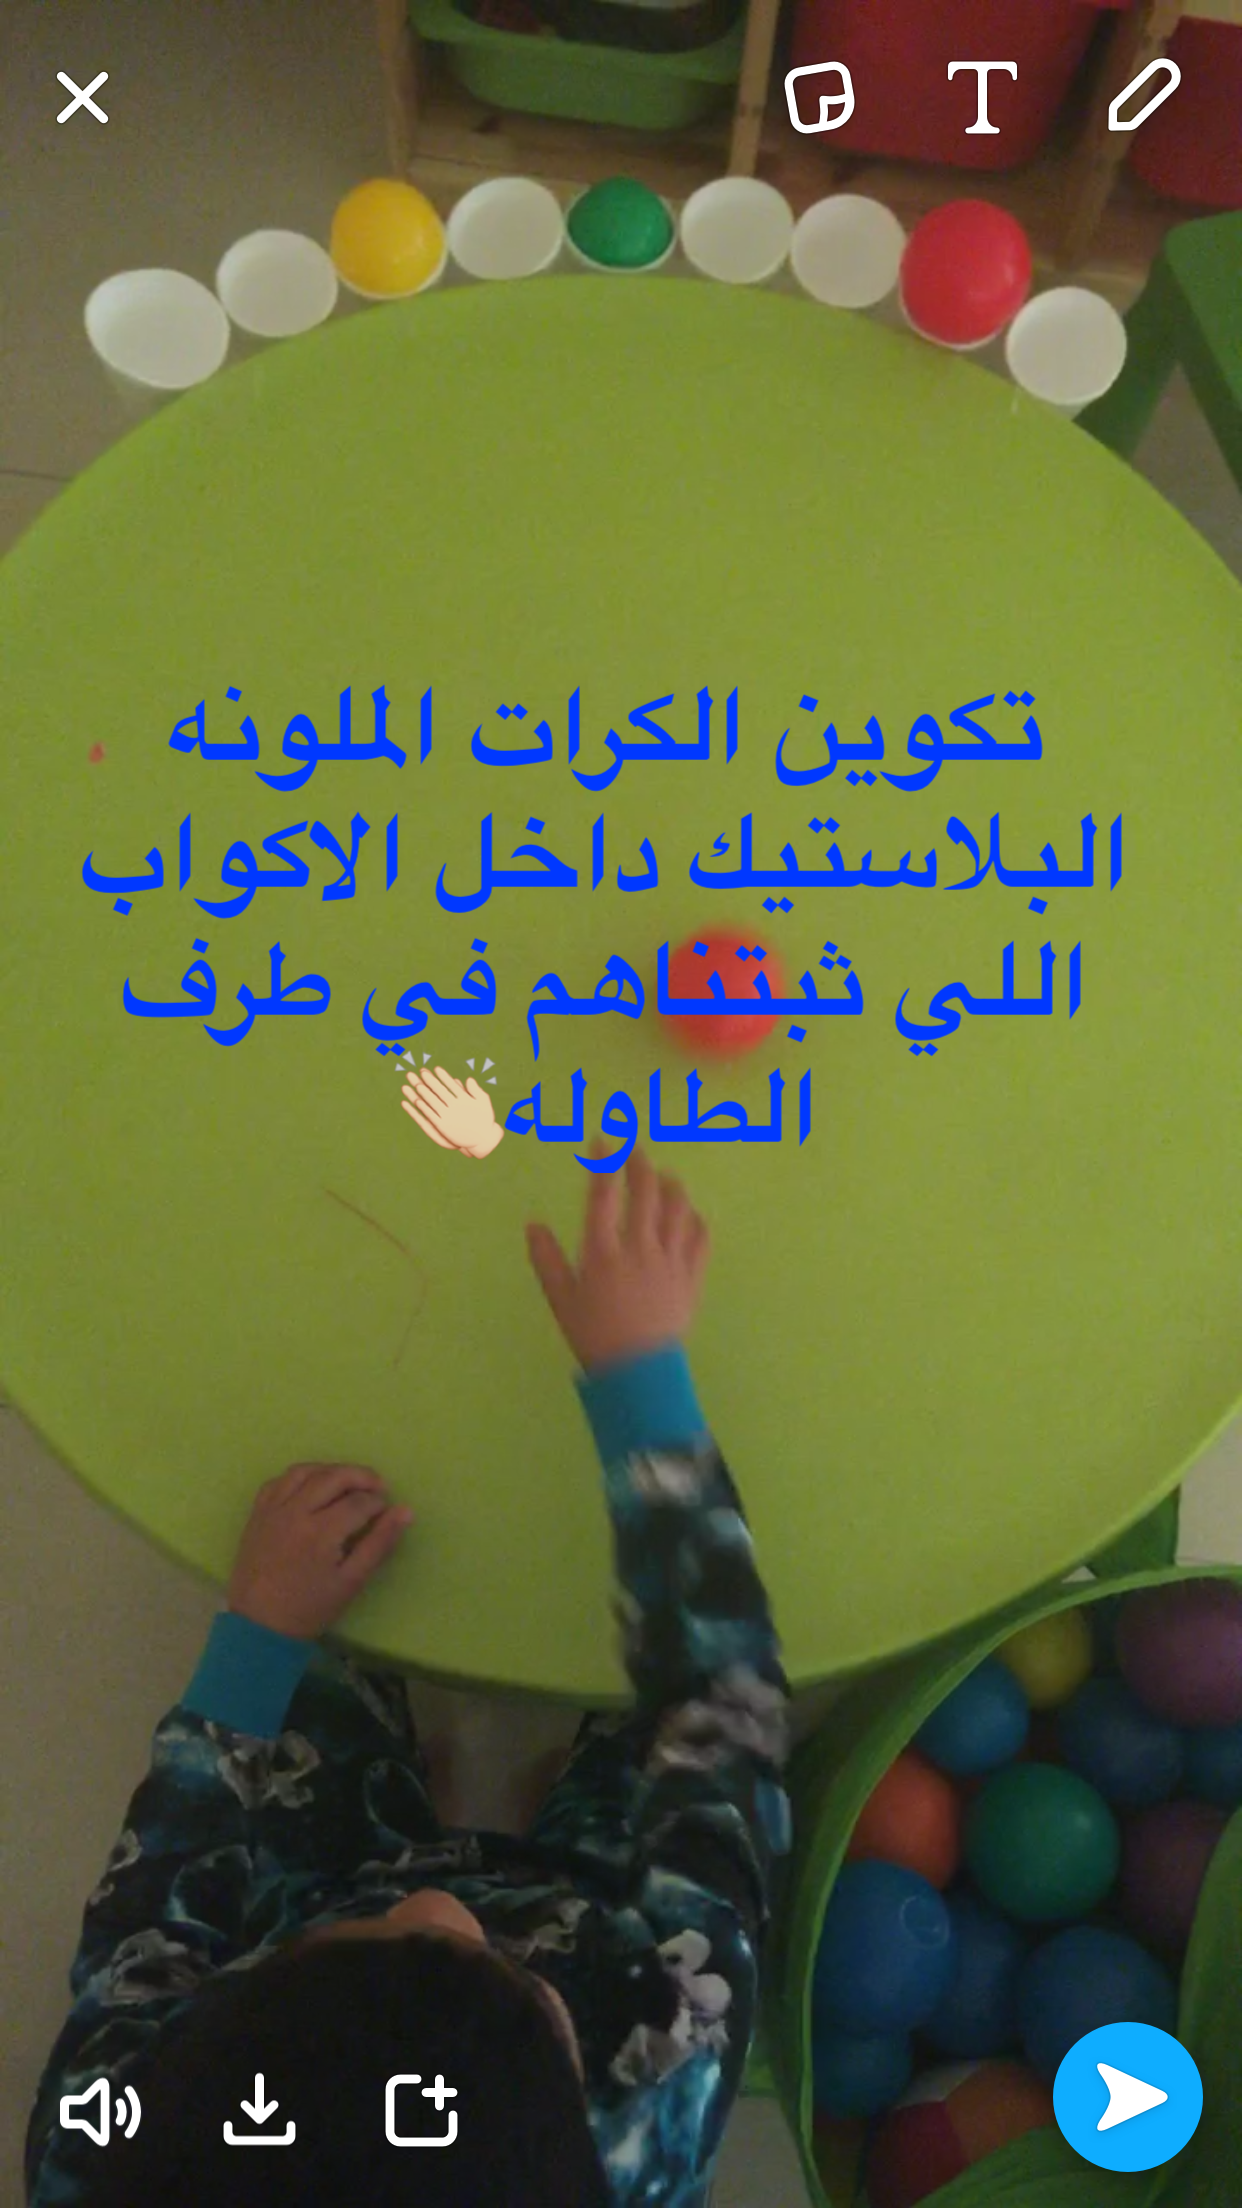 نشاط للاطفال من عمر السنة Preschool Learning Activities Diy Kid Activities Arabic Kids